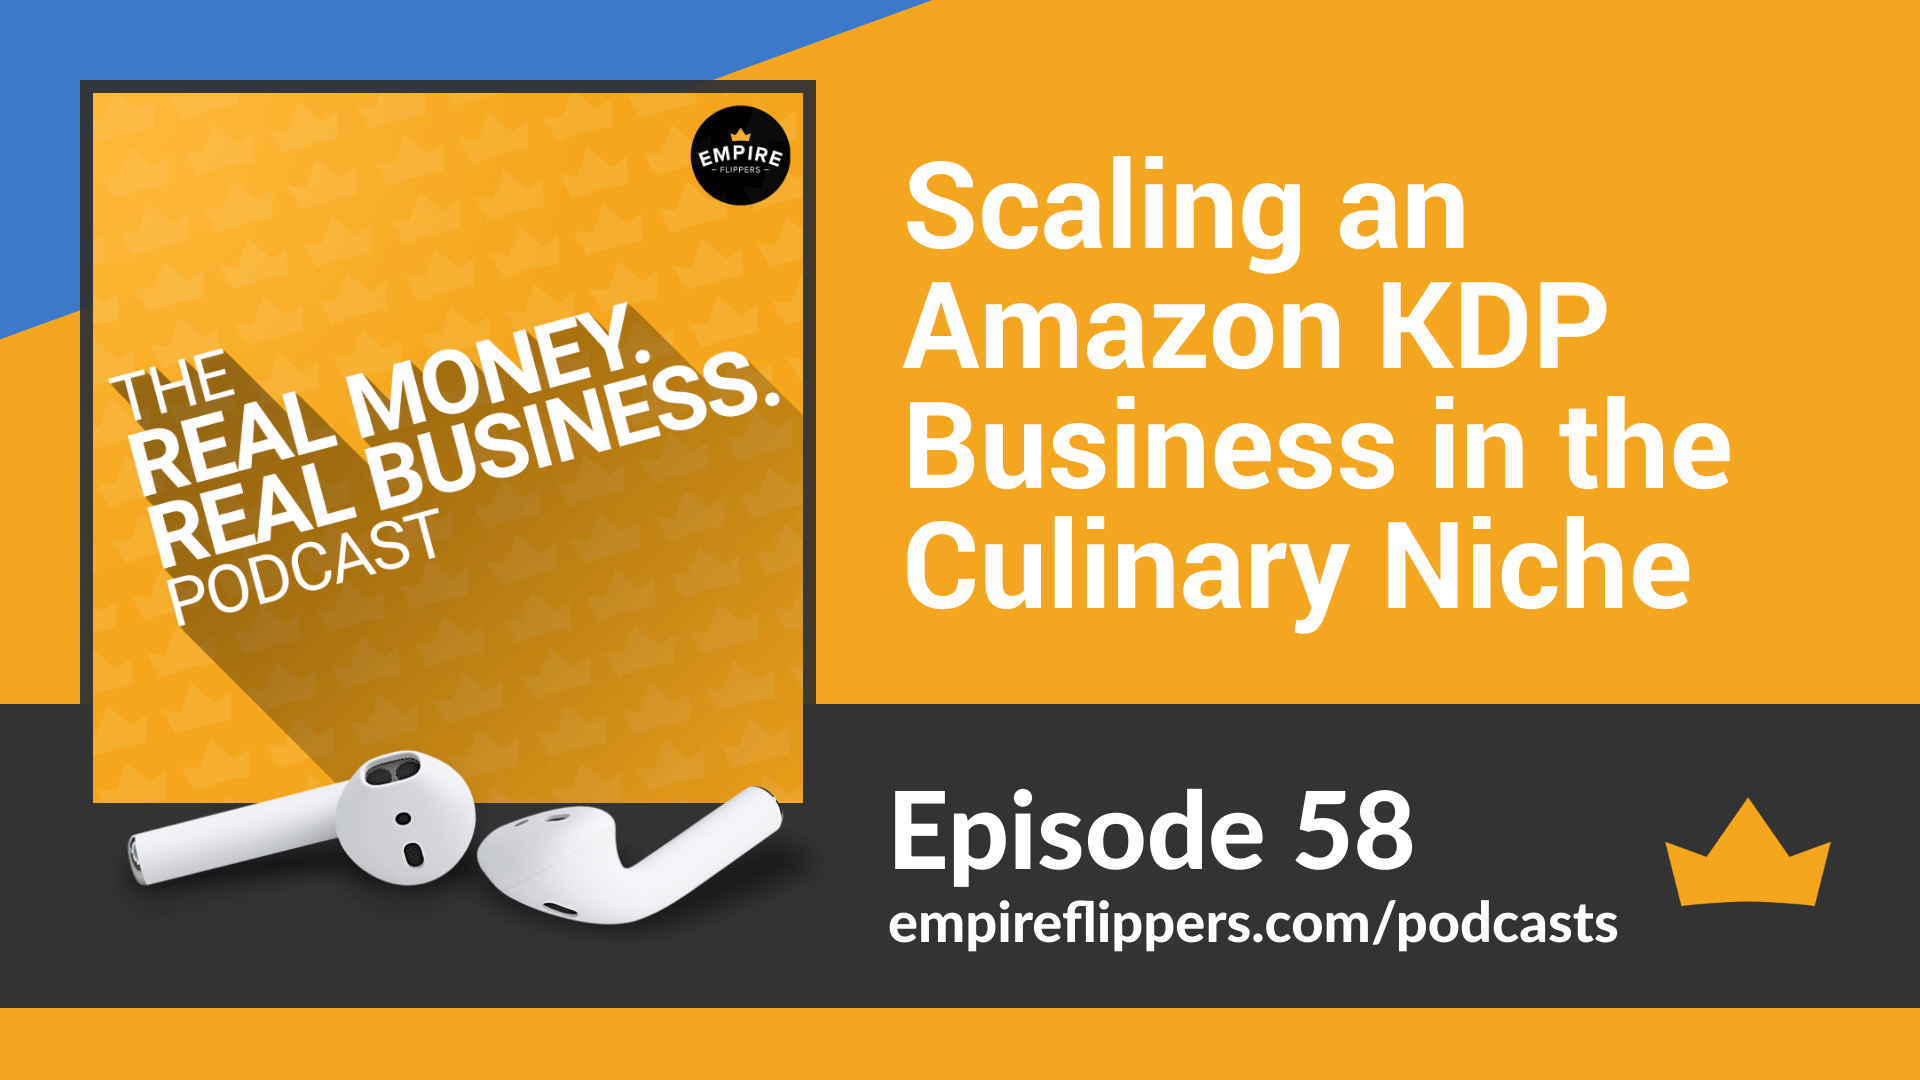 RMRB 58 Scaling an Amazon KDP Business in the Culinary niche